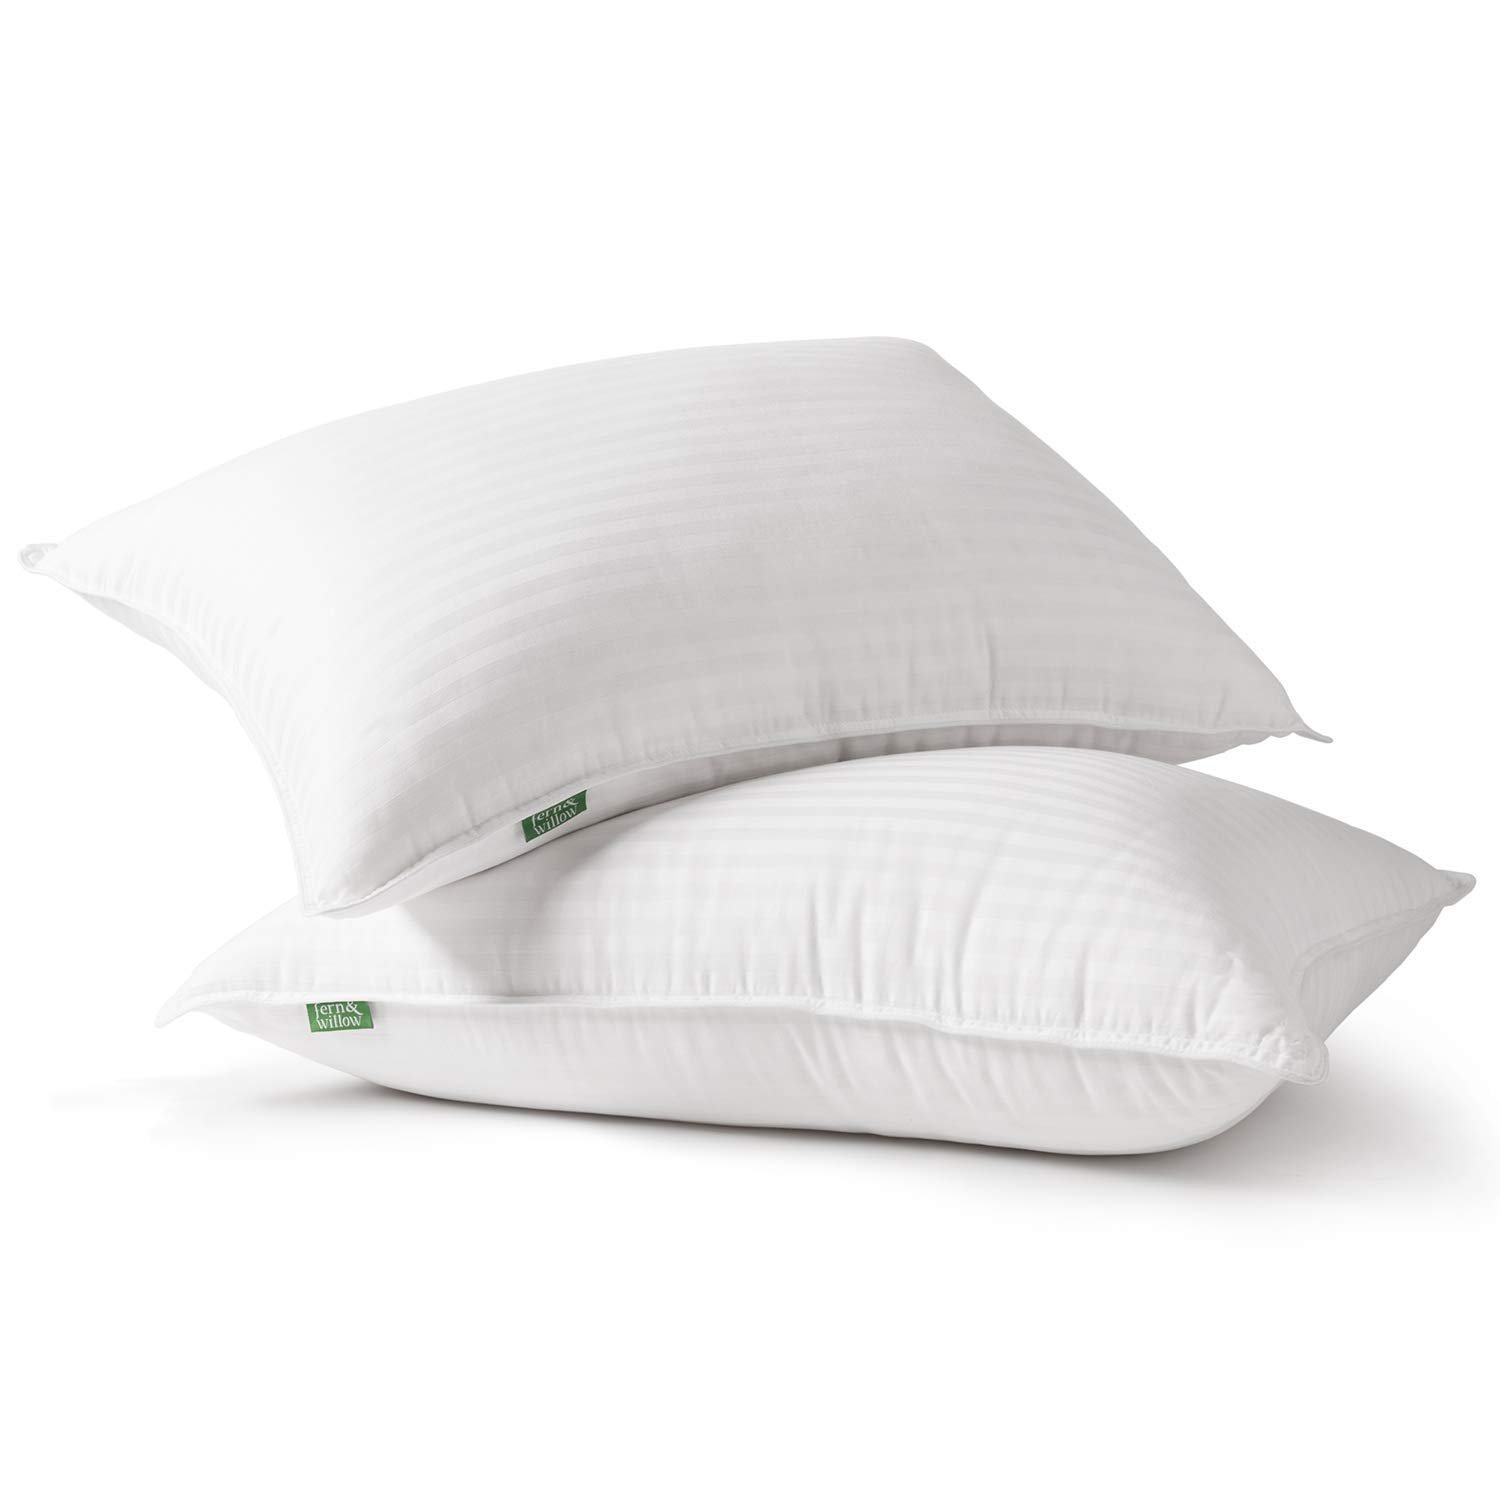 Fern and Willow Premium Loft Down Alternative Pillows for Sleeping (2-Pack) - Luxury Gel Plush Pillow (Queen) by Fern and Willow